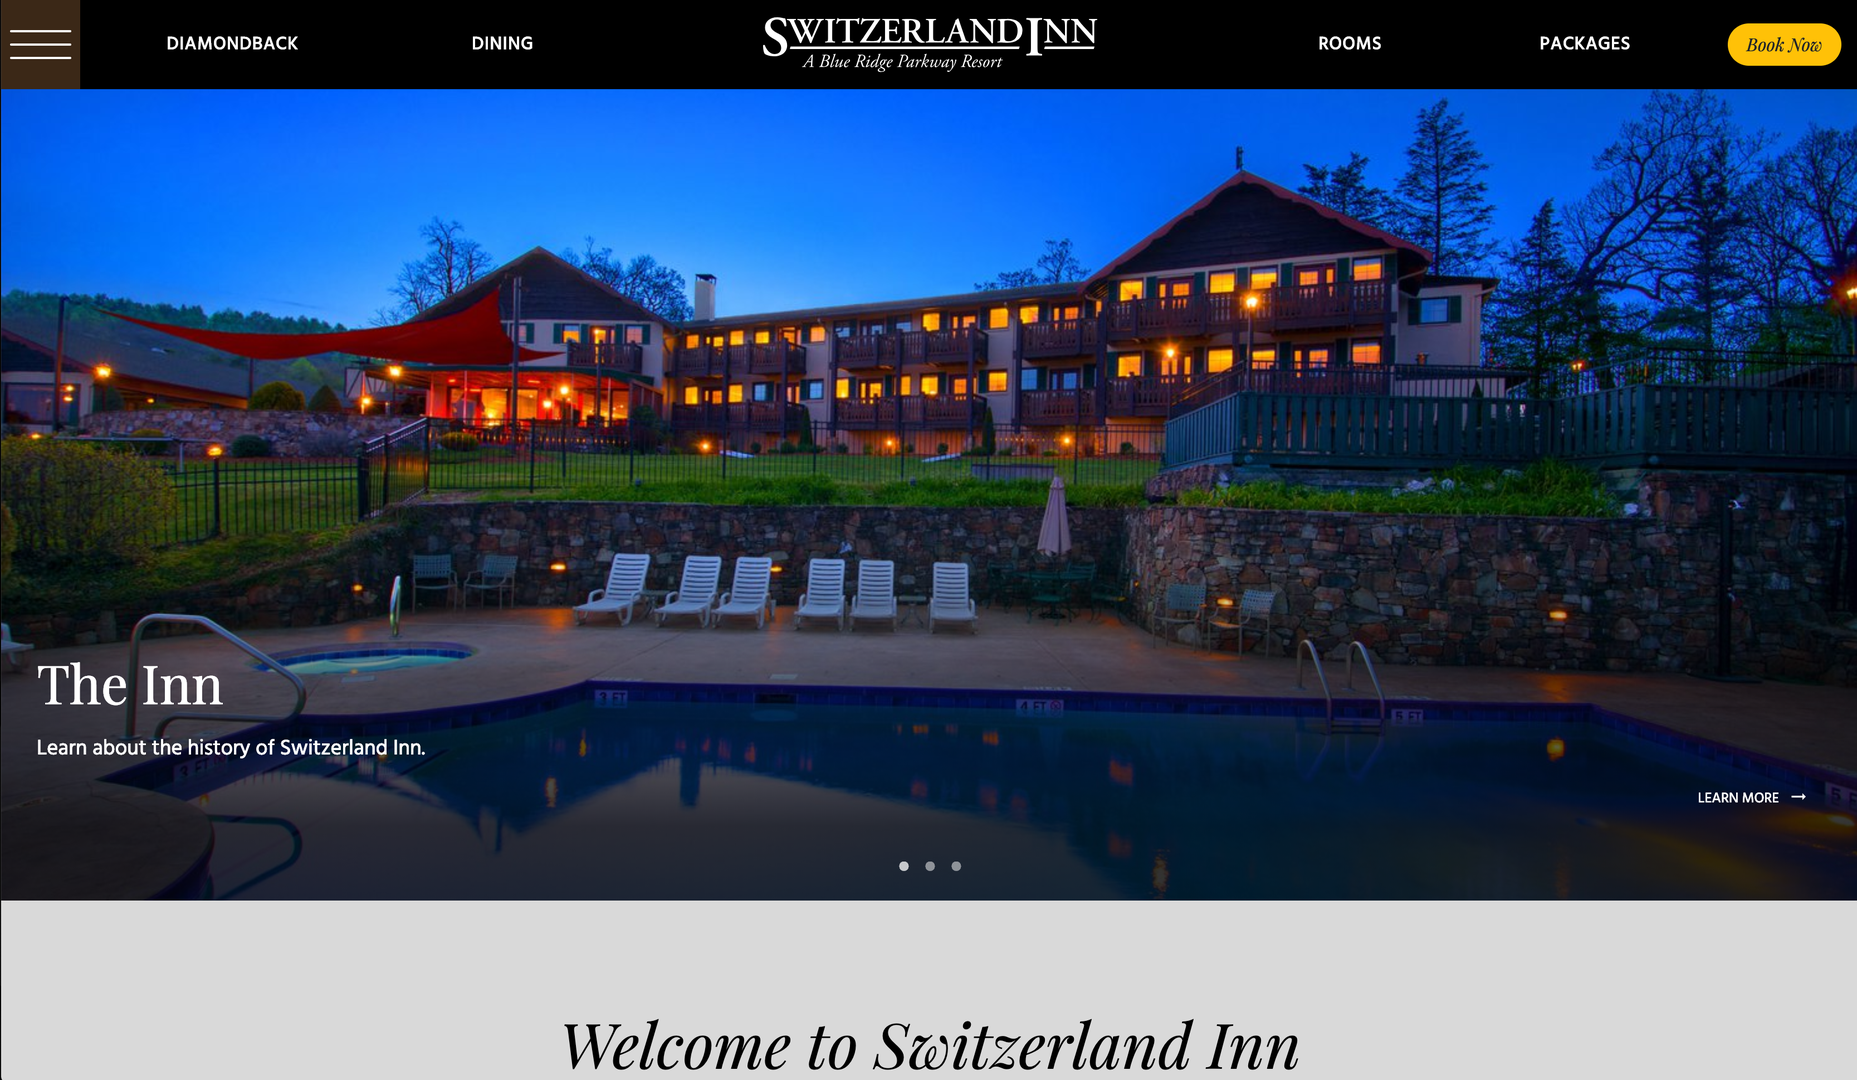 Switzerland Inn New website home